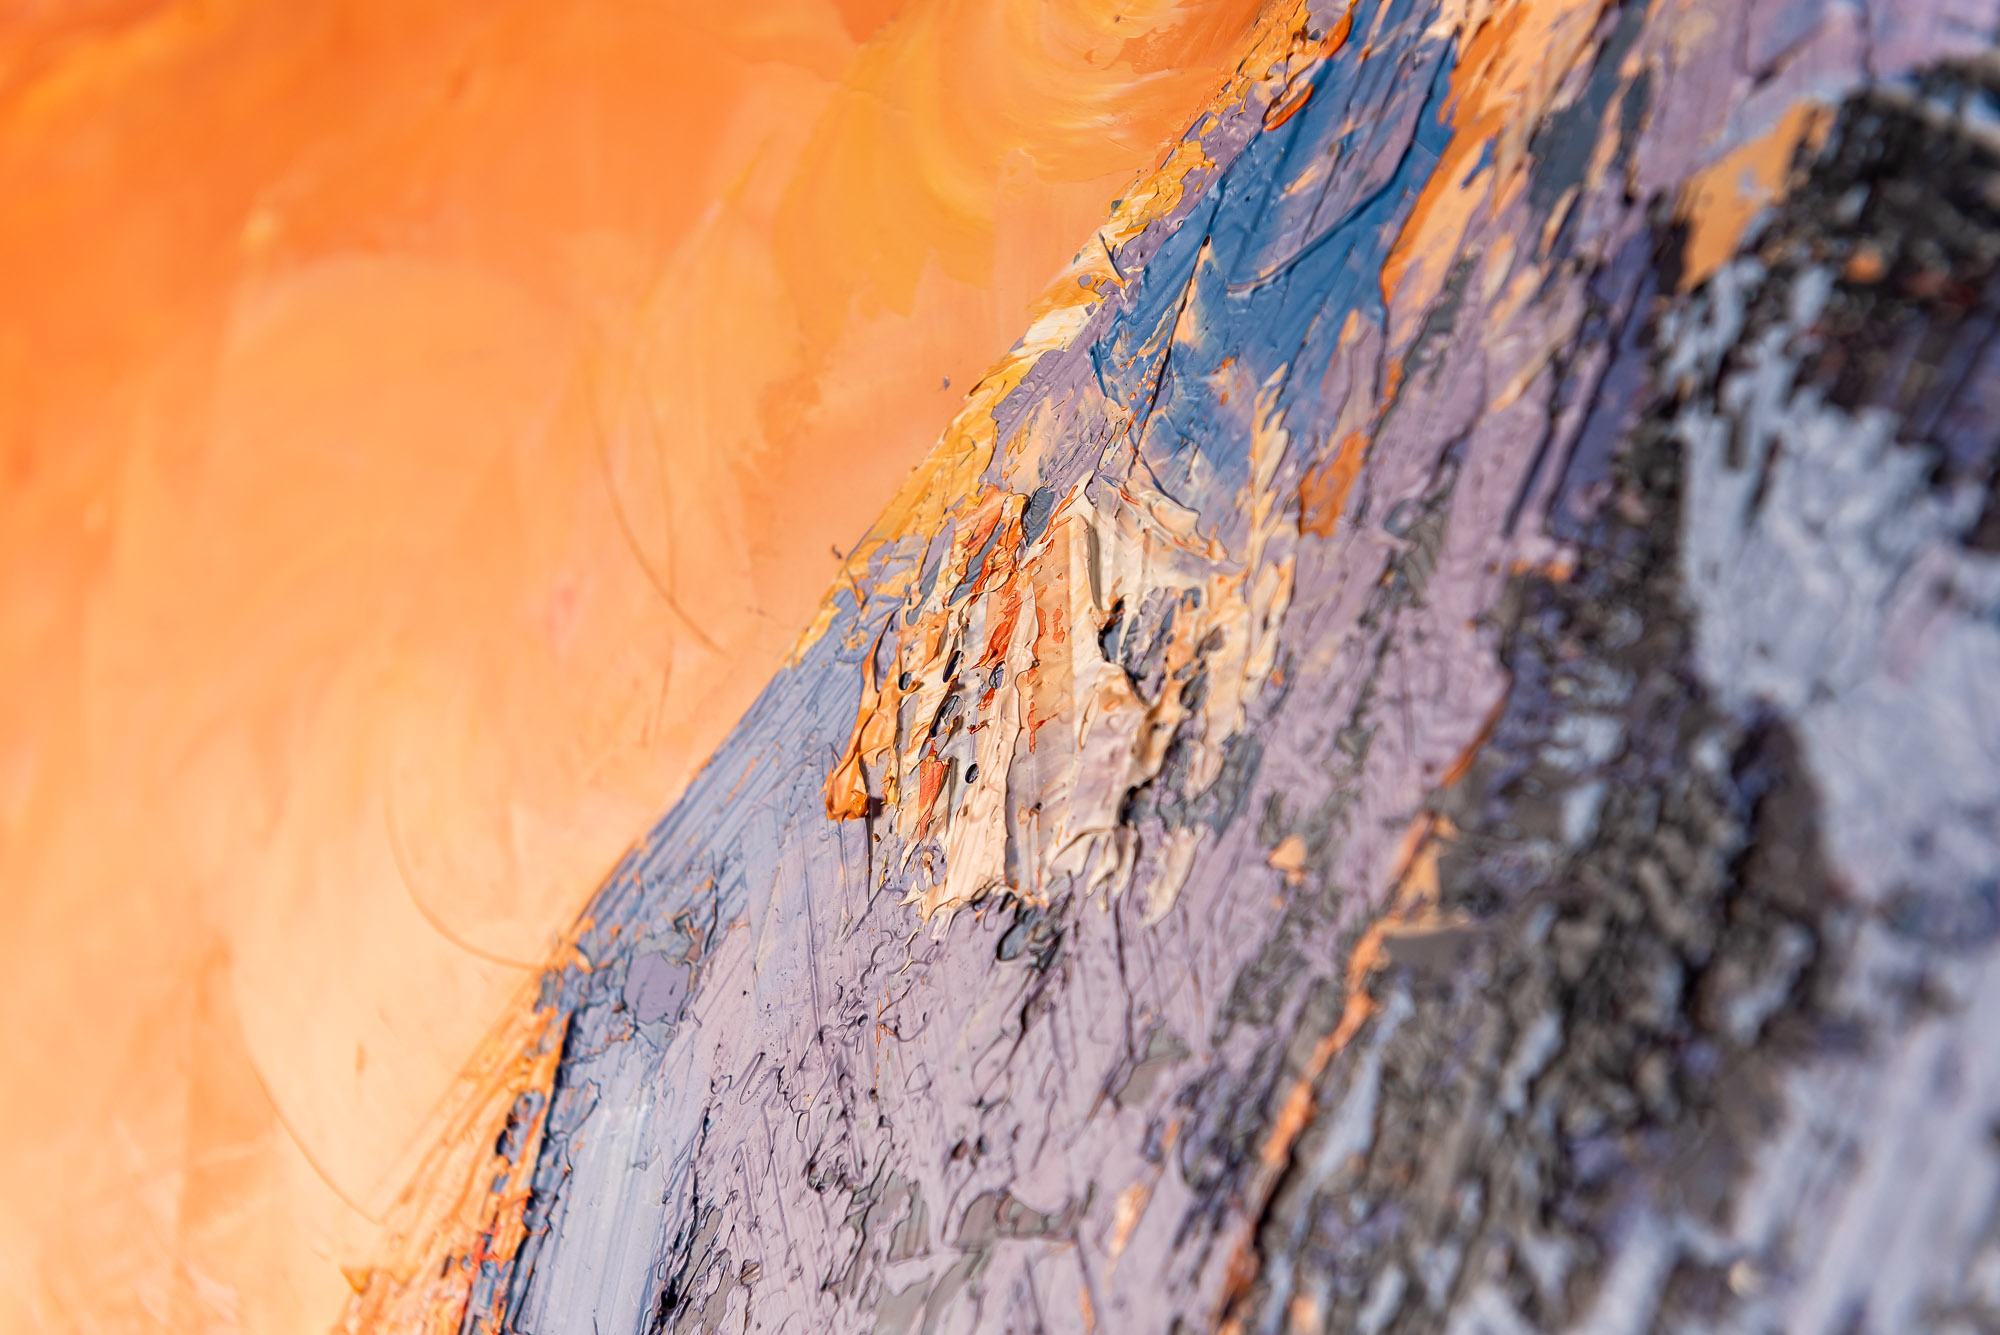 Sunset Summit by Paul Kenton, UK Contemporary artist, a K2 Mountain view original painting from his Oceans and Mountainscapes Art Collection